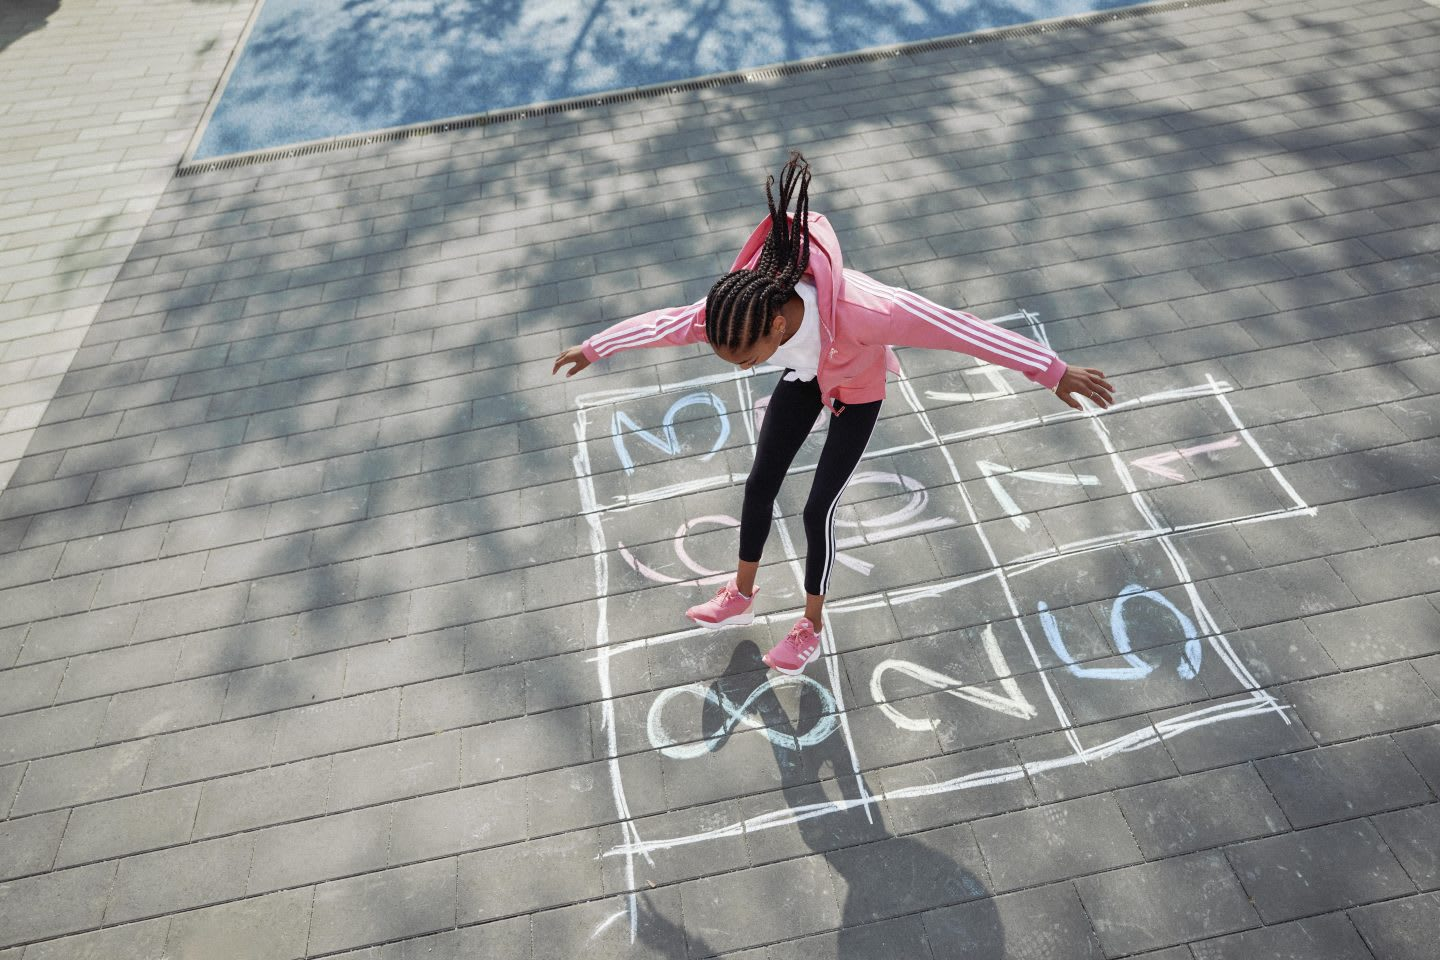 Girl playing in the playground with numbers drawn in chalk on the ground, adidas, sports, movement, apparel